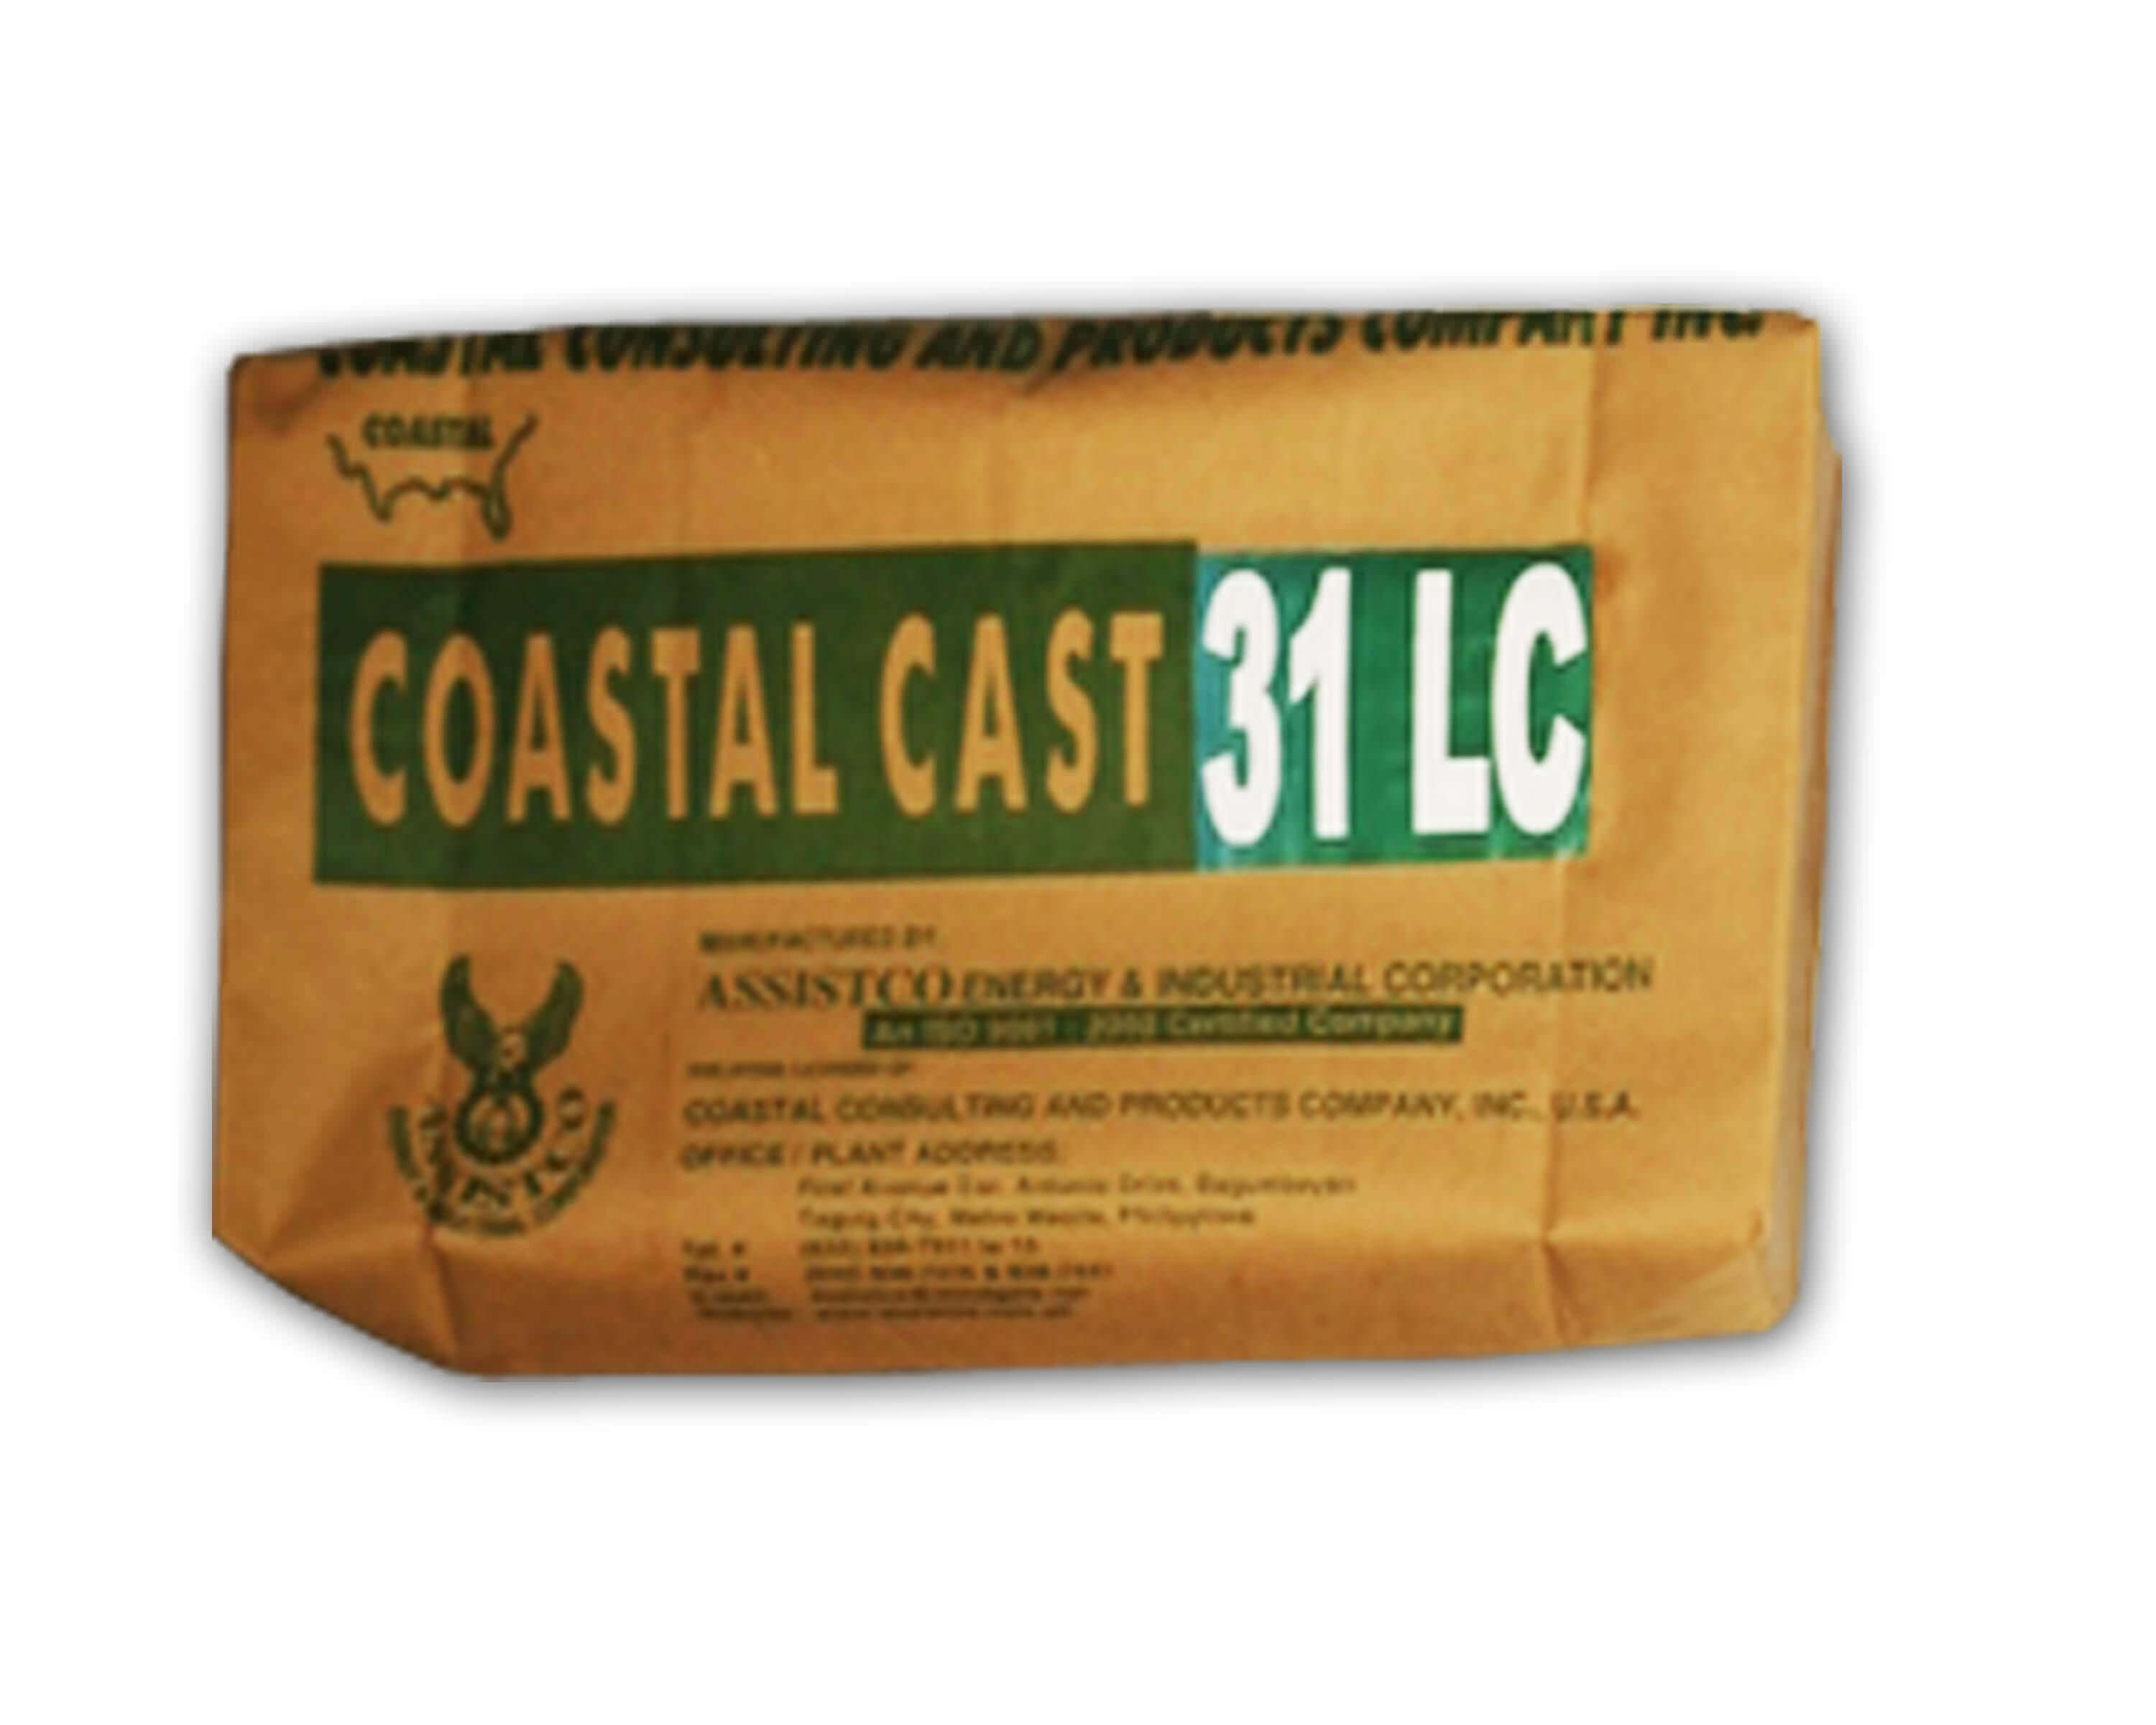 Coastal Cast Silicon Carbide (SC) Low Cement Cast